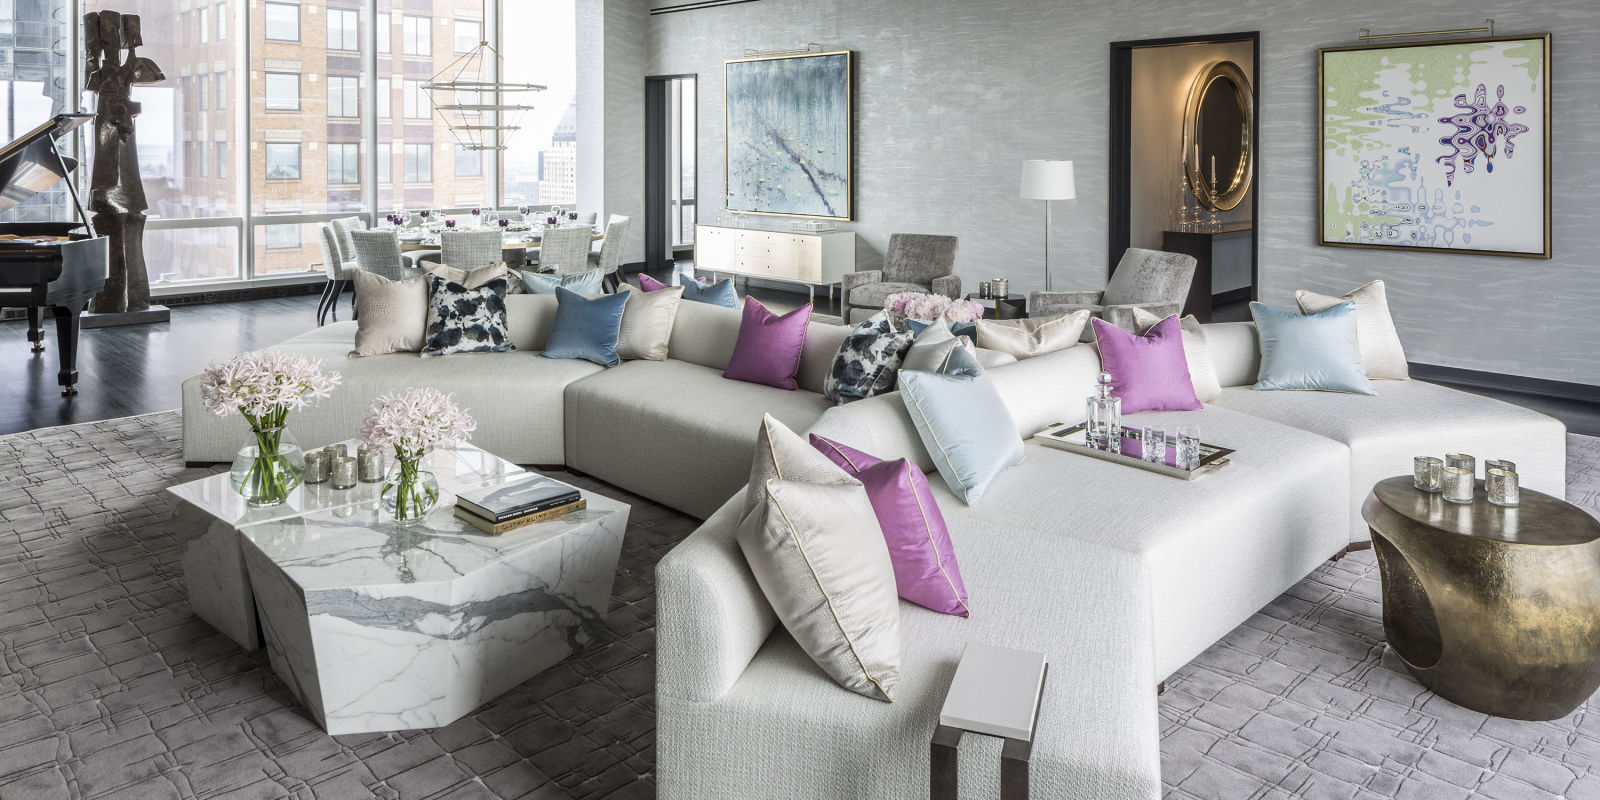 Most expensive apartment in new york city sold for 100 for Most expensive apartment nyc